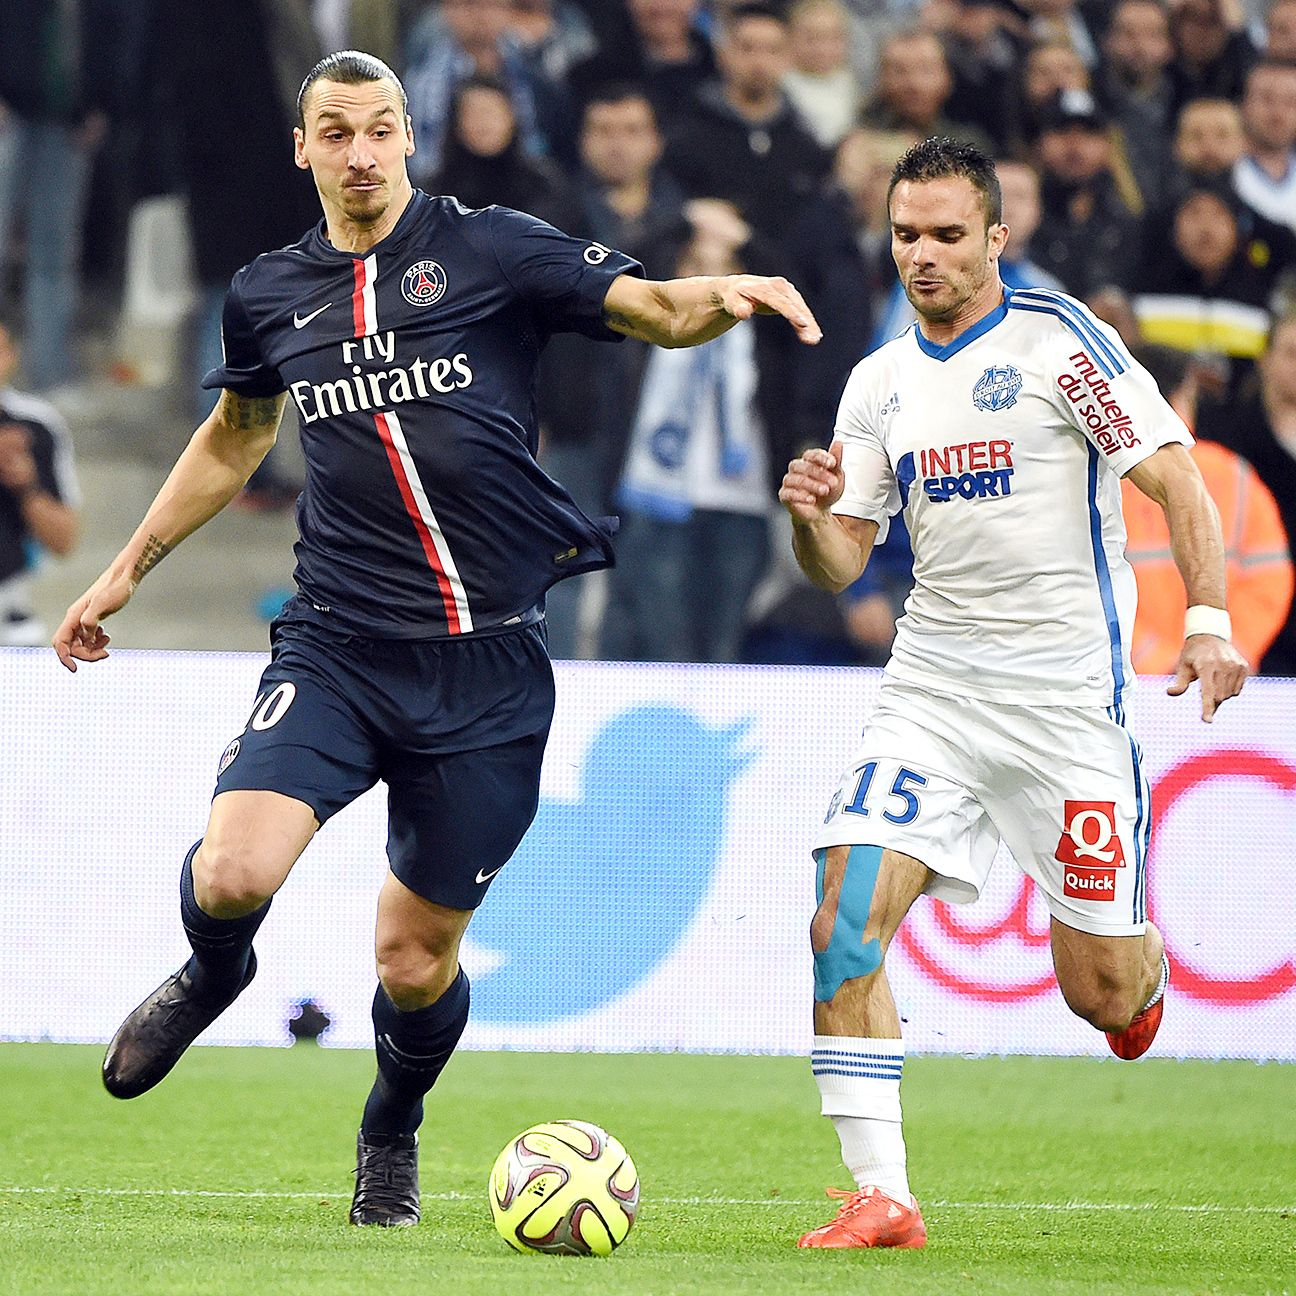 Despite a wide disparity in the table, Zlatan Ibrahimovic and PSG will be wary of rivals Marseille on Sunday.